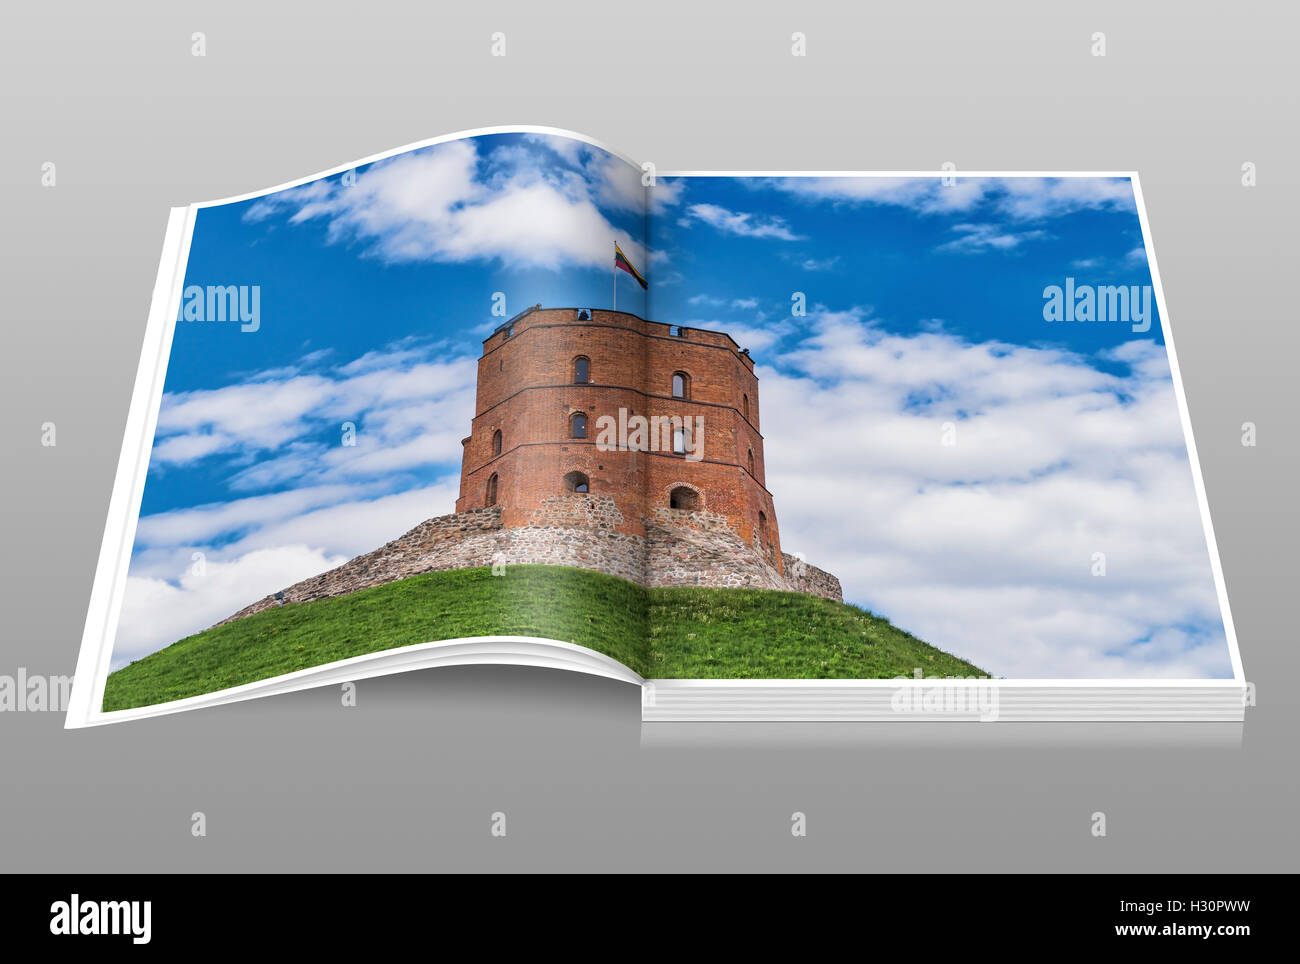 The Gediminas Tower is the landmark of Vilnius, Lithuania, Baltic States, Europe Stock Photo